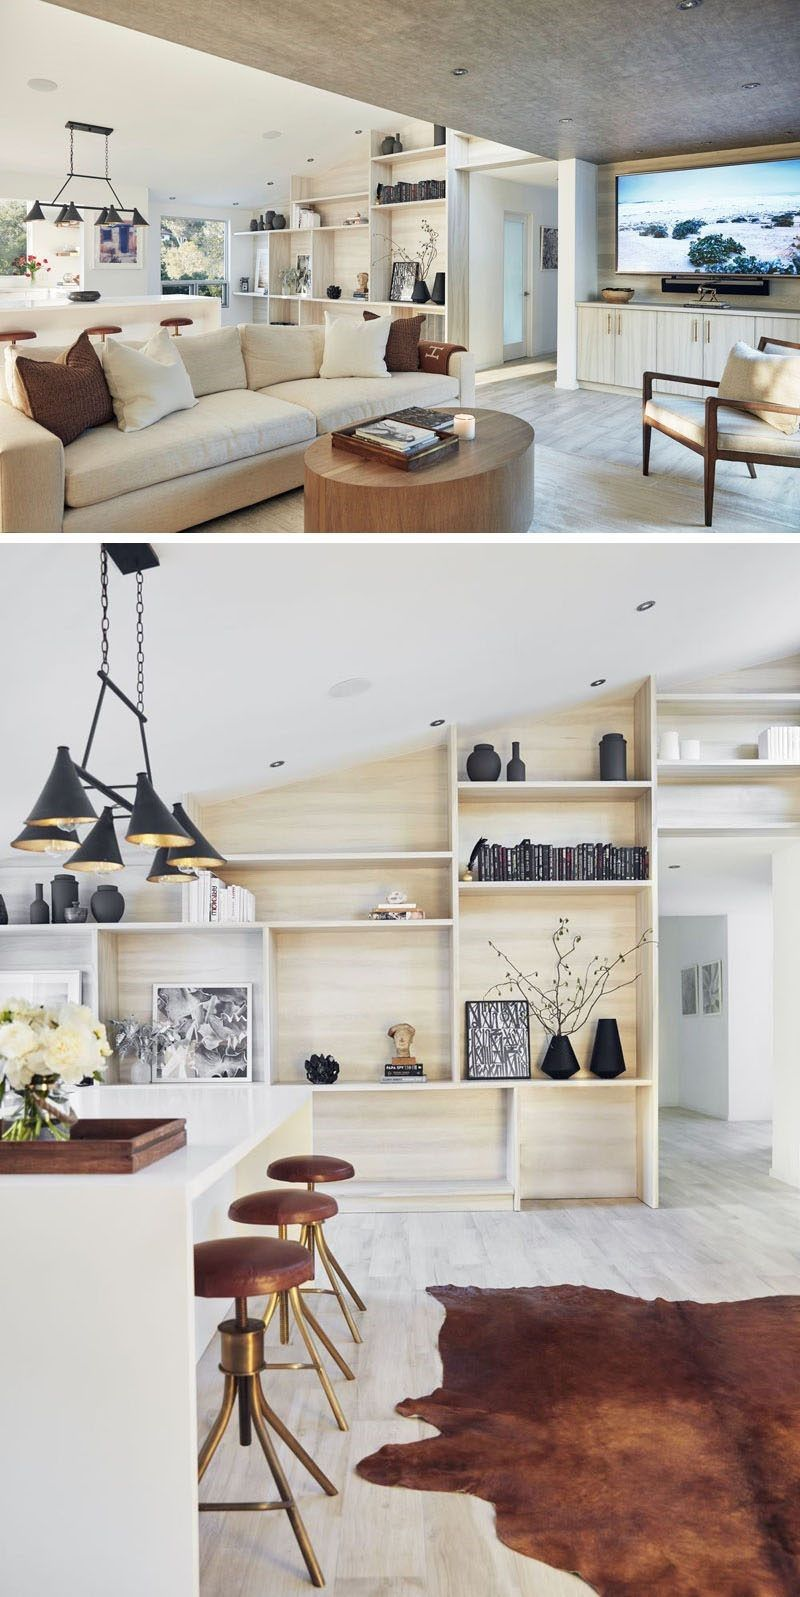 Unique interior design ideas interiorideas homedesign also rh in pinterest